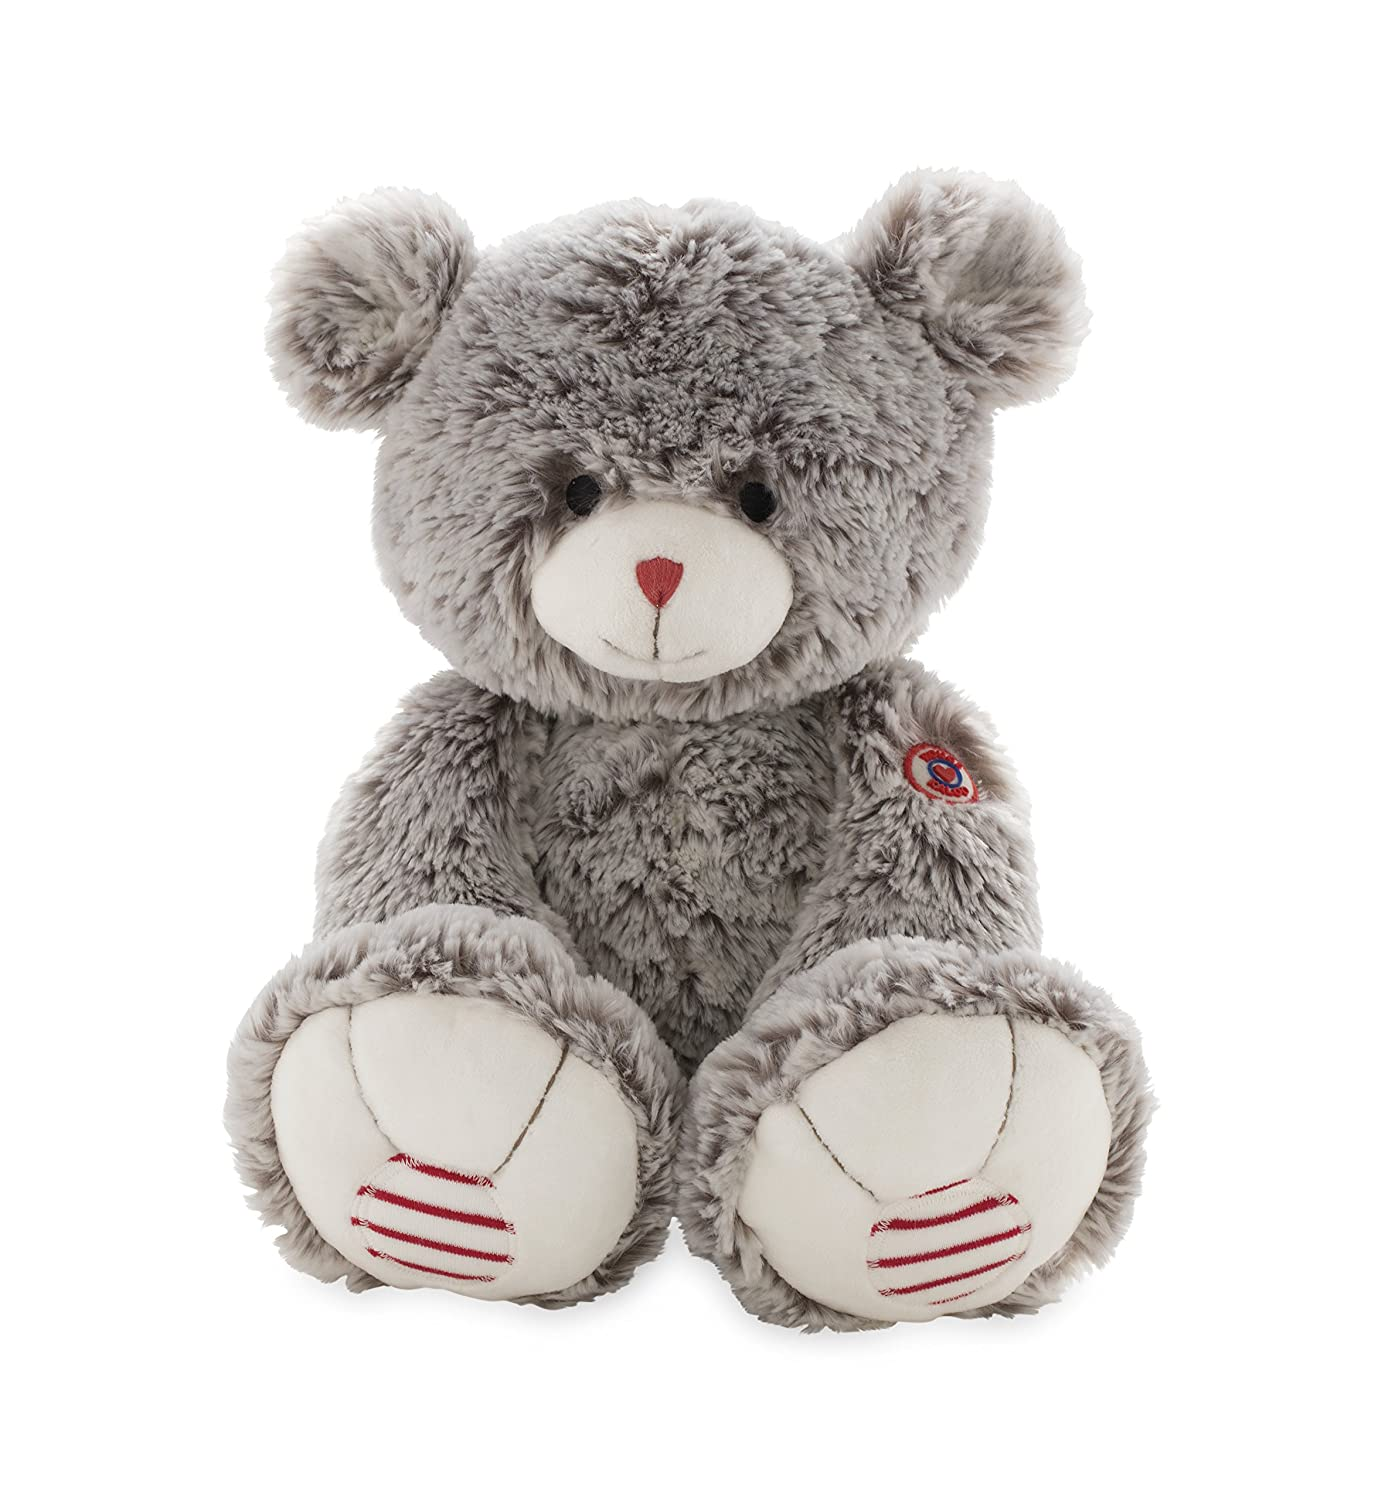 Kaloo Rouge Lapin Peluche Gris Taille Grand Juratoys K962984